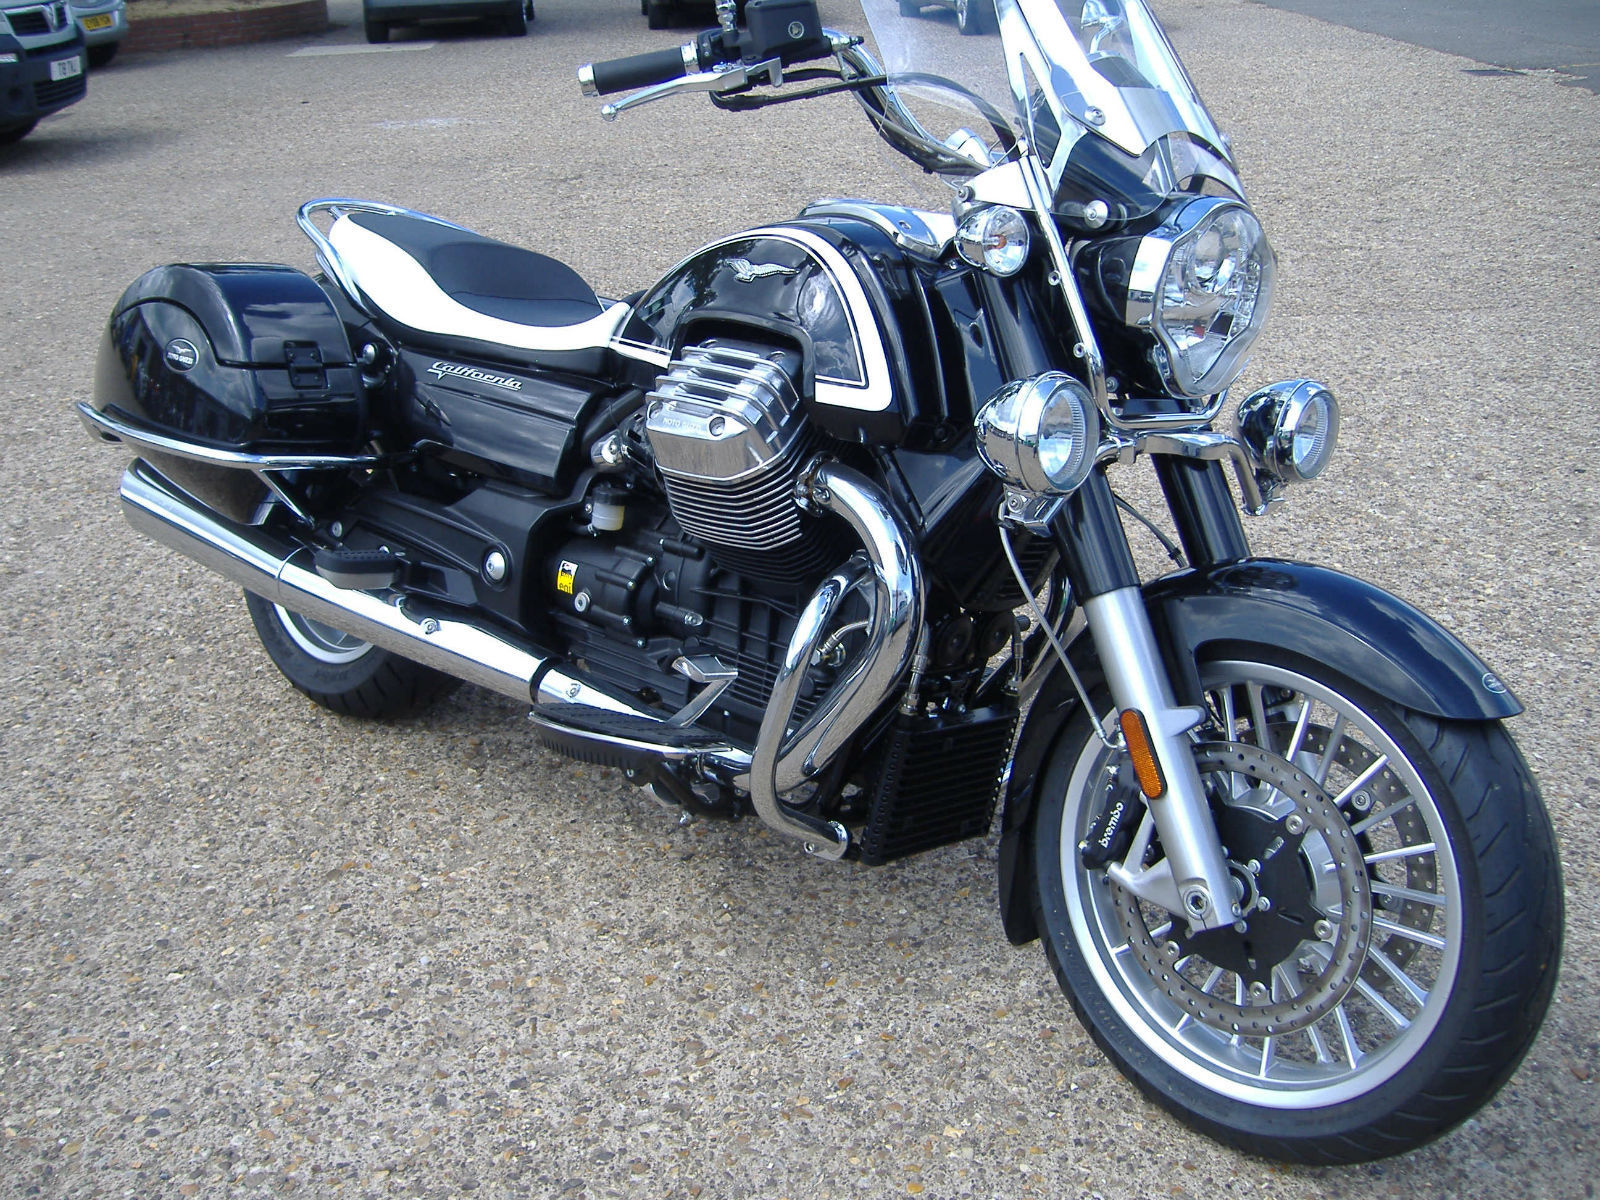 moto guzzi california 1400 touring. Black Bedroom Furniture Sets. Home Design Ideas